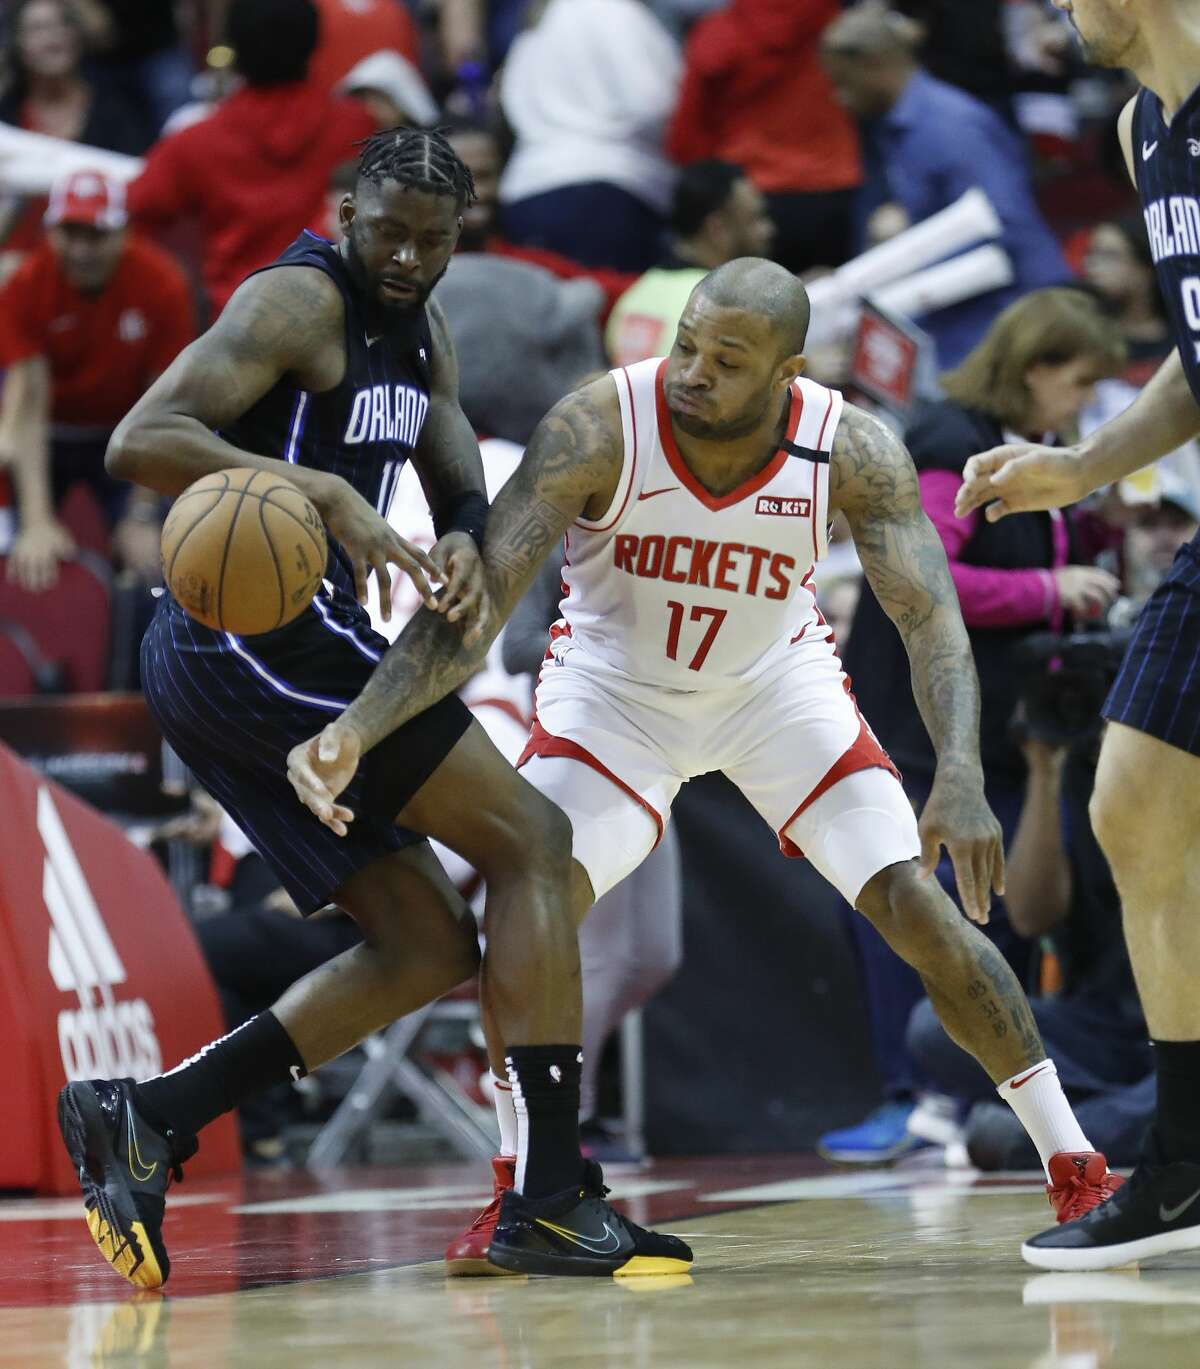 Orlando Magic forward James Ennis III (11) and Houston Rockets forward P.J. Tucker (17) chase a loose ball during the second half of an NBA basketball game, in Houston,Sunday, March 8, 2020.